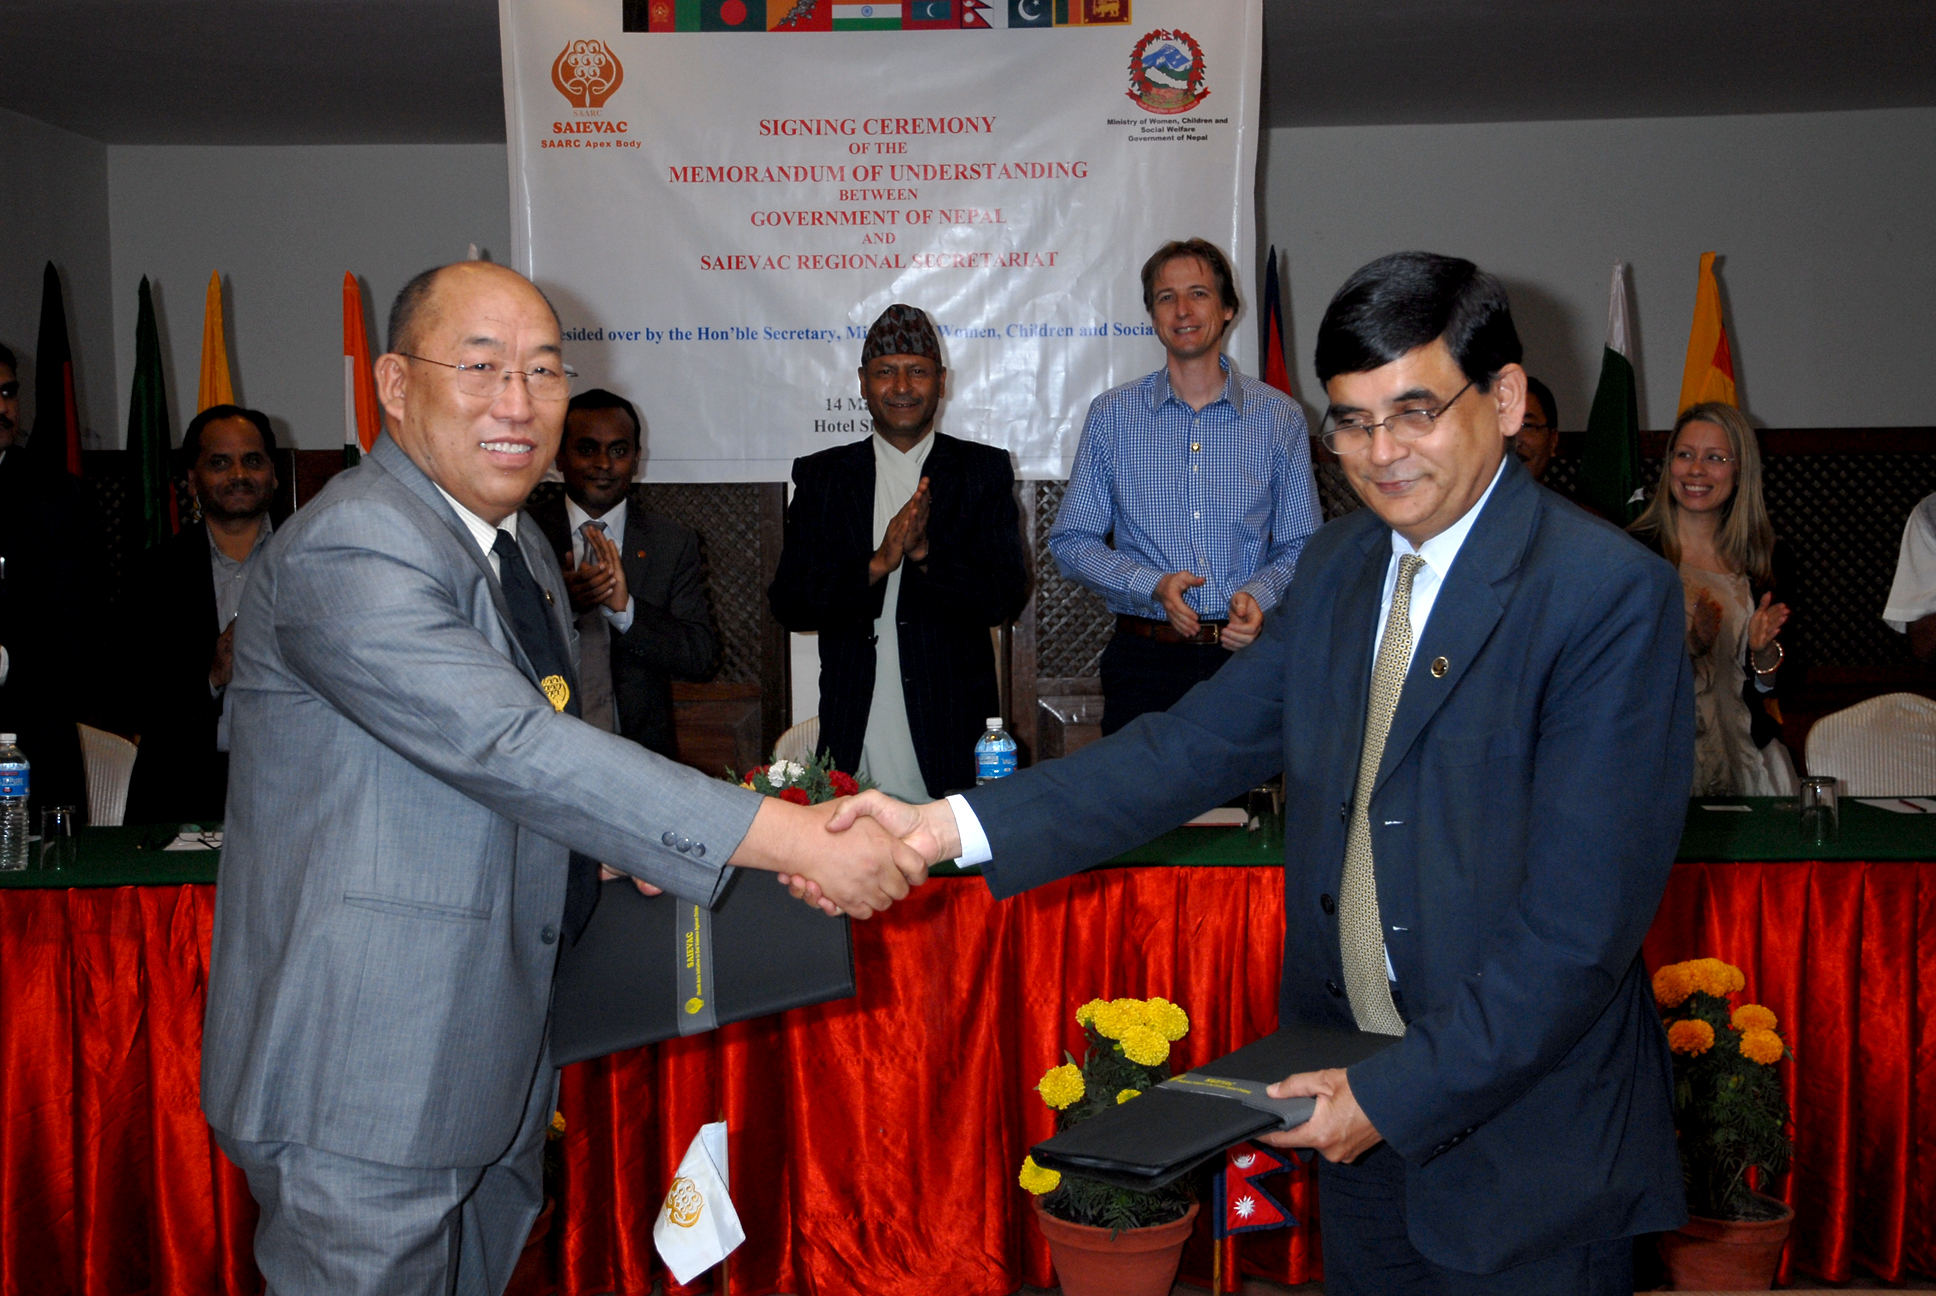 MOU Signing Between the Government of Nepal and SAIEVAC Regional Secretariat